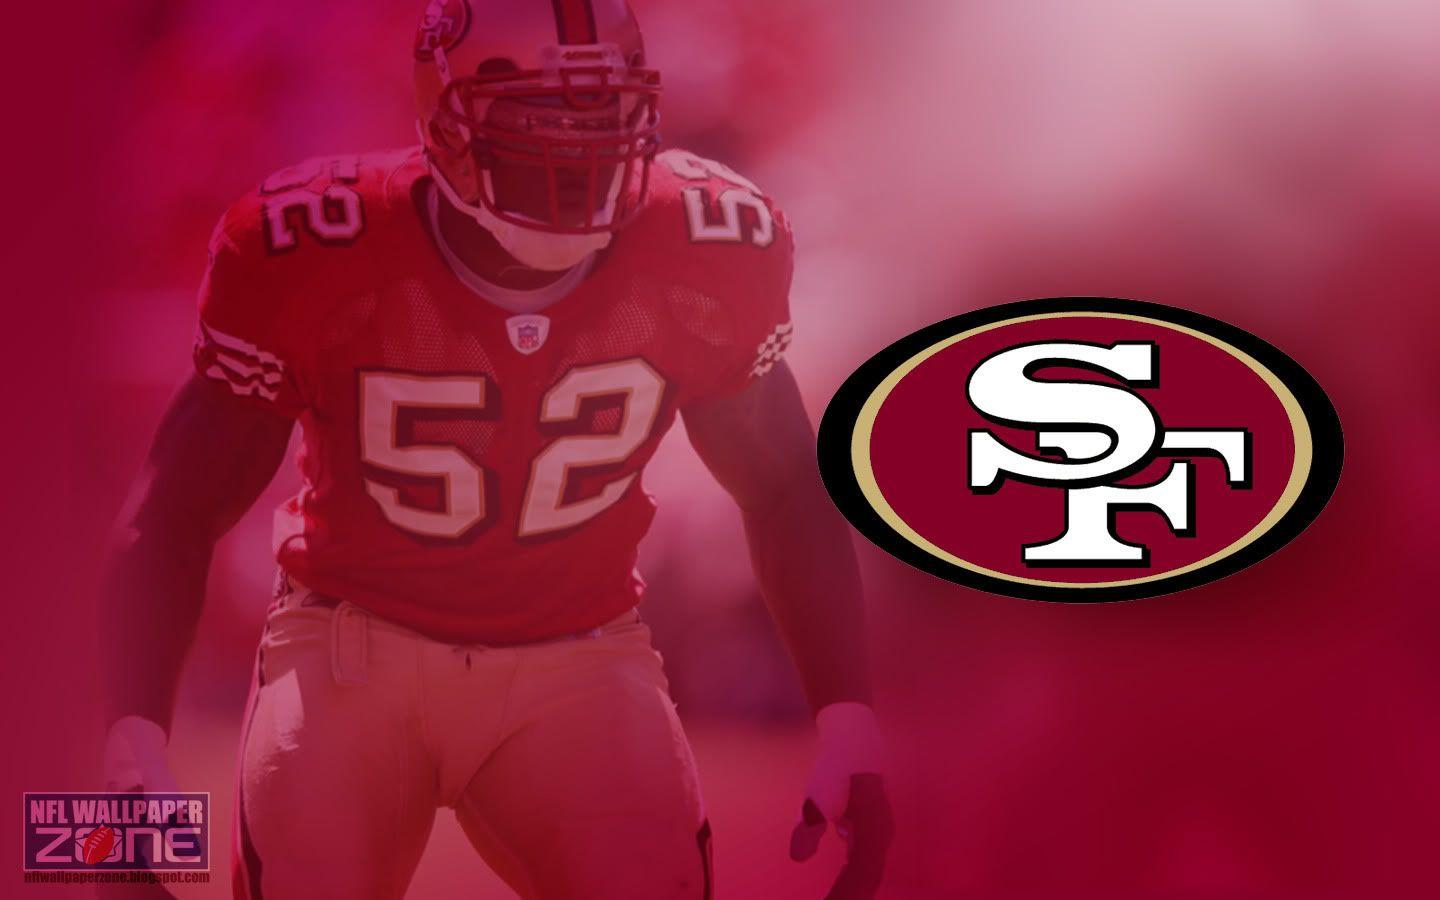 San Francisco 49ers wallpaper images | San Francisco 49ers wallpapers